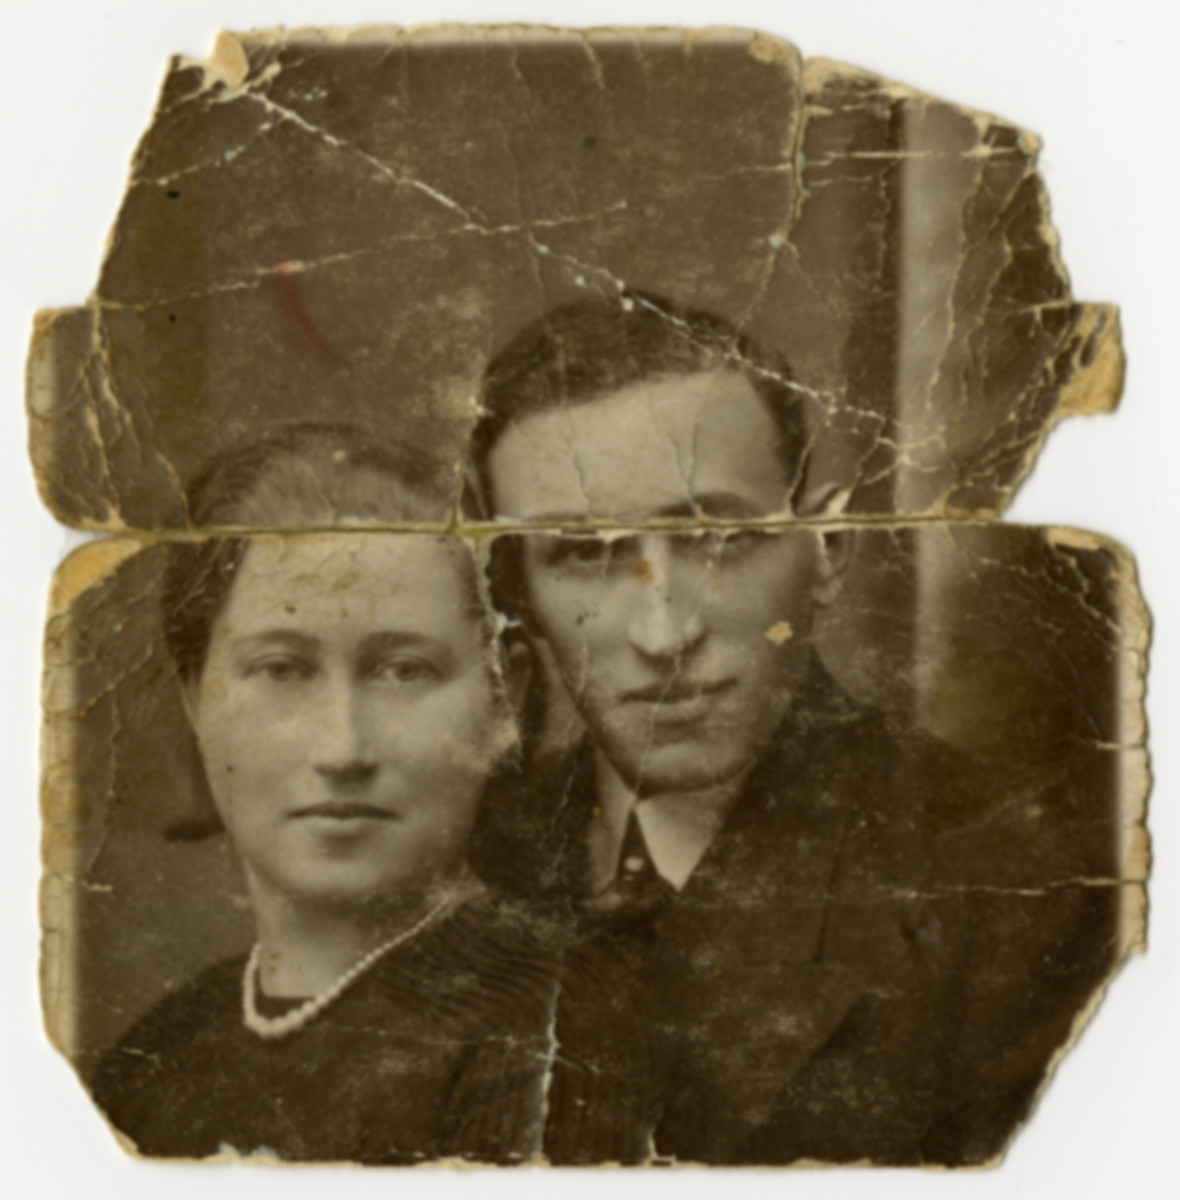 Studio portrait of Wolf and Sura Kupersztajn, Clara's brother and sister-in-law, who lived in Warsaw and perished there during the Holocaust.